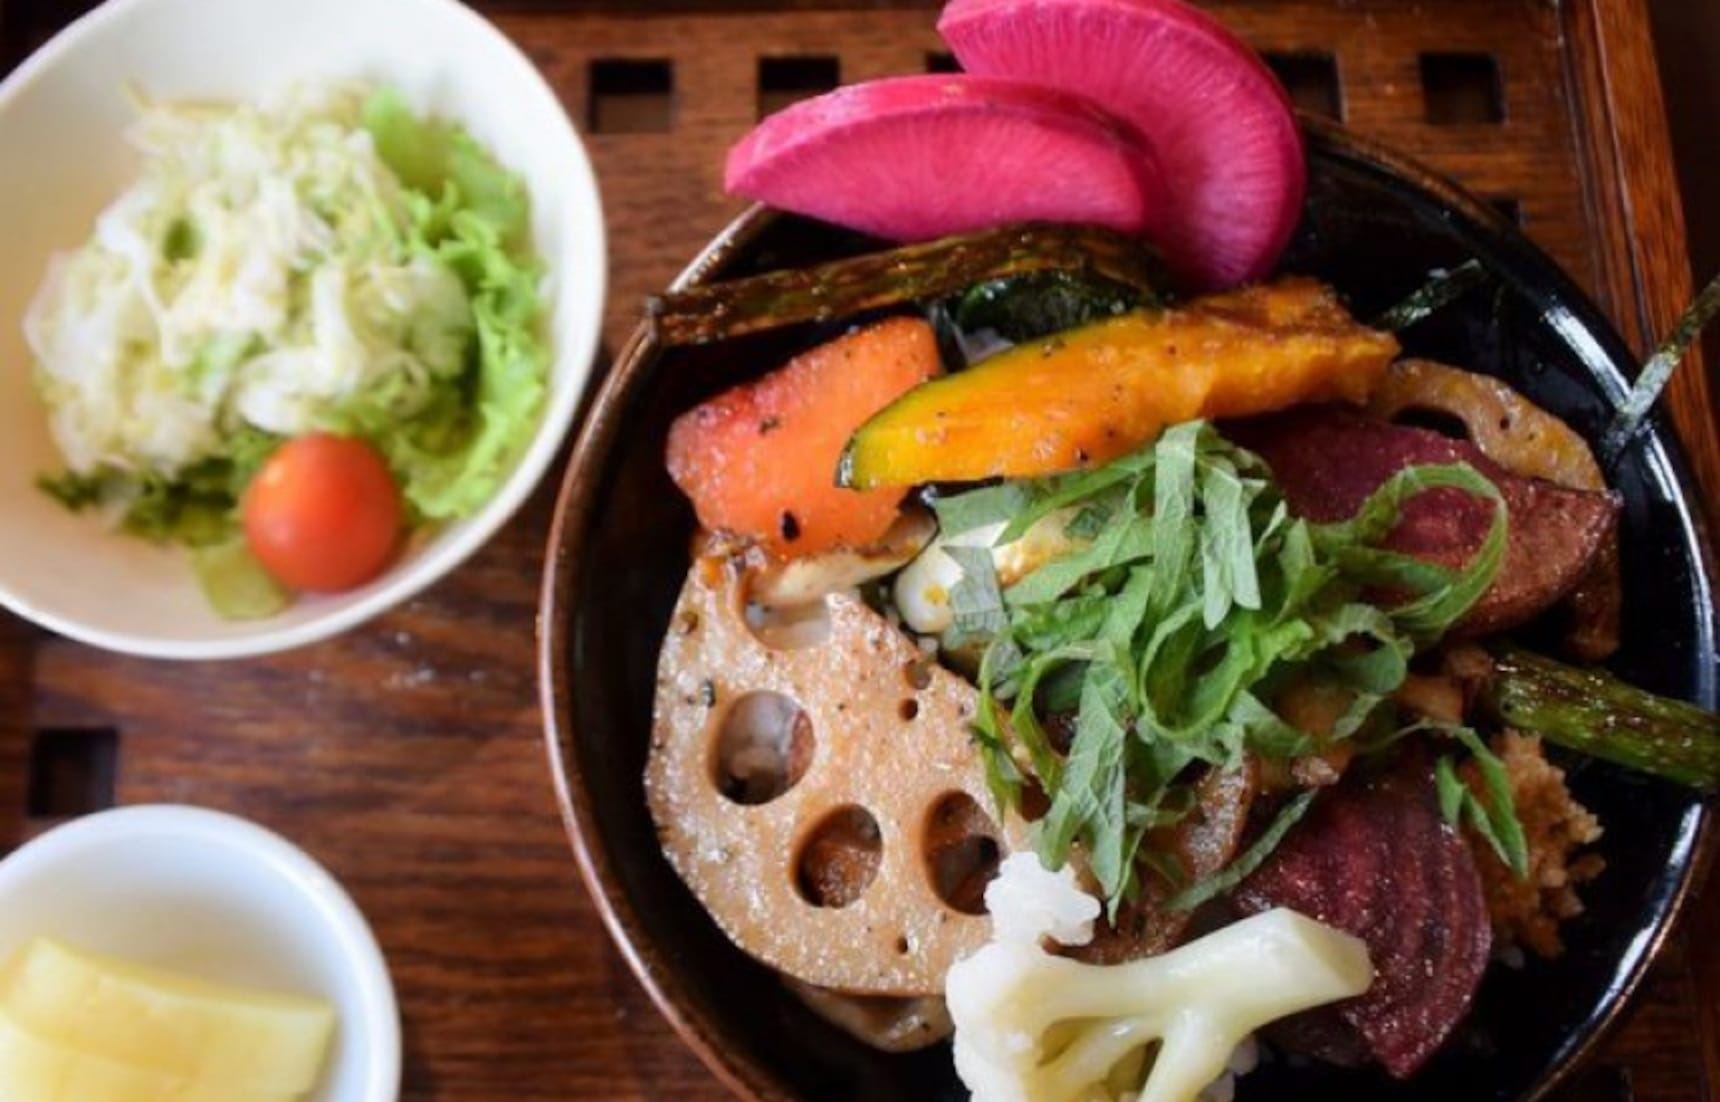 20 Best Places to Enjoy Sapporo's Local Foods